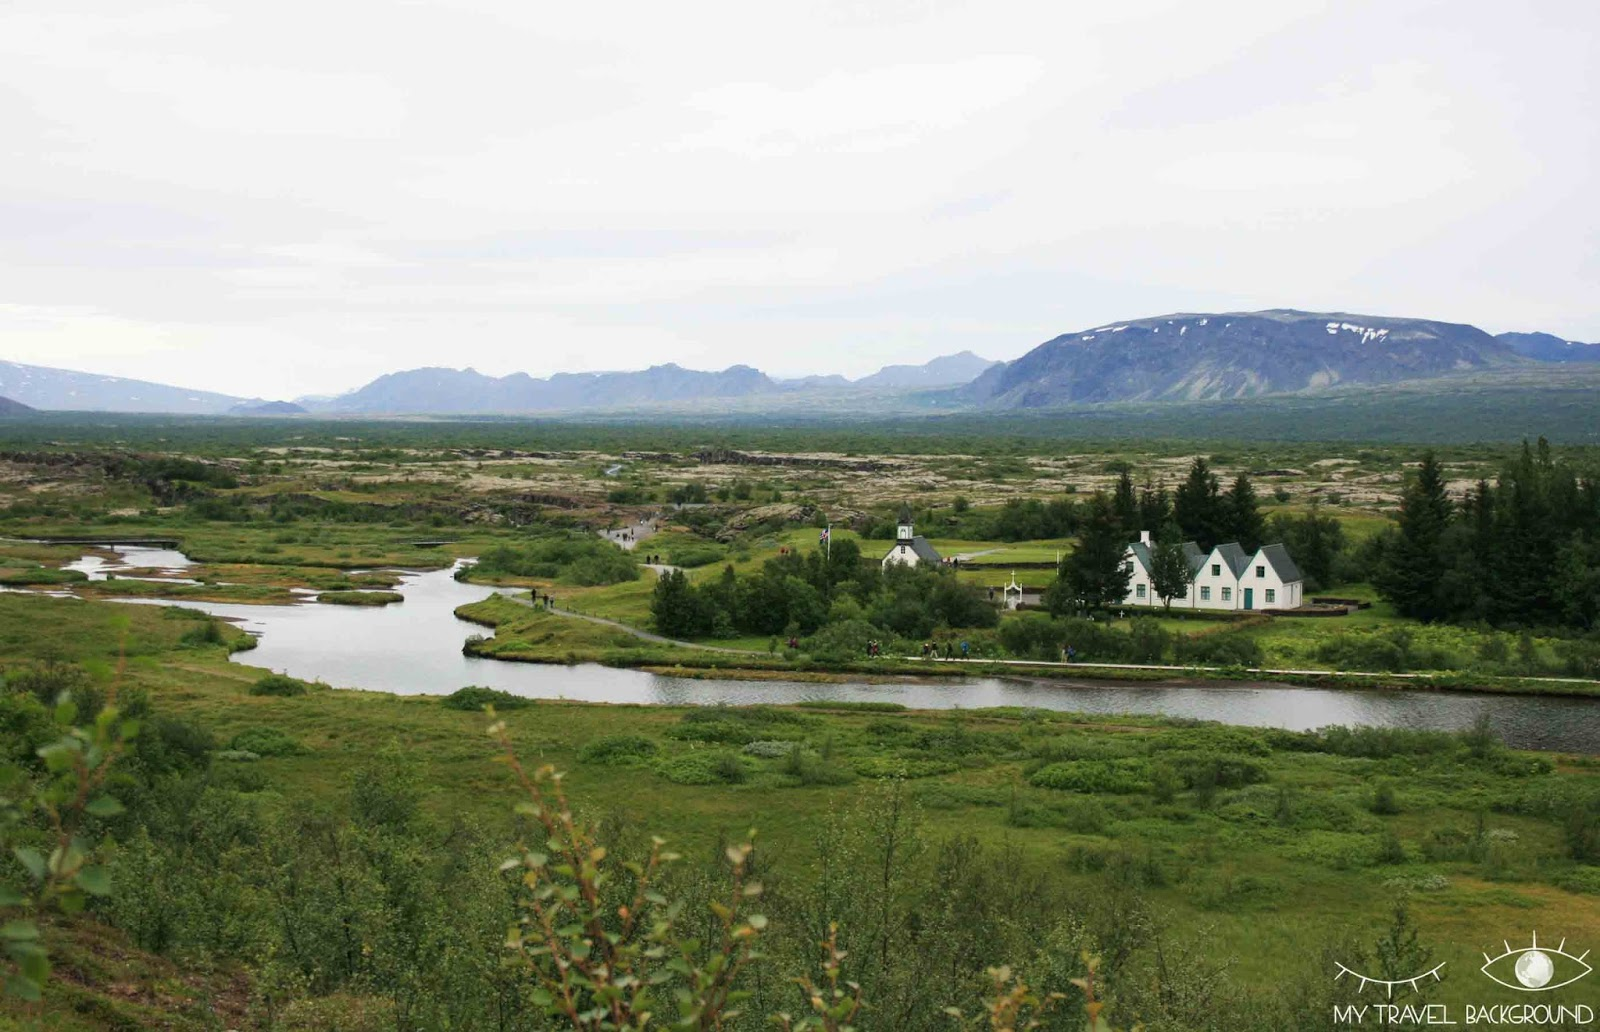 My Travel Background : visite du Cercle d'Or en Islande - Thingvellir / Pingvellir